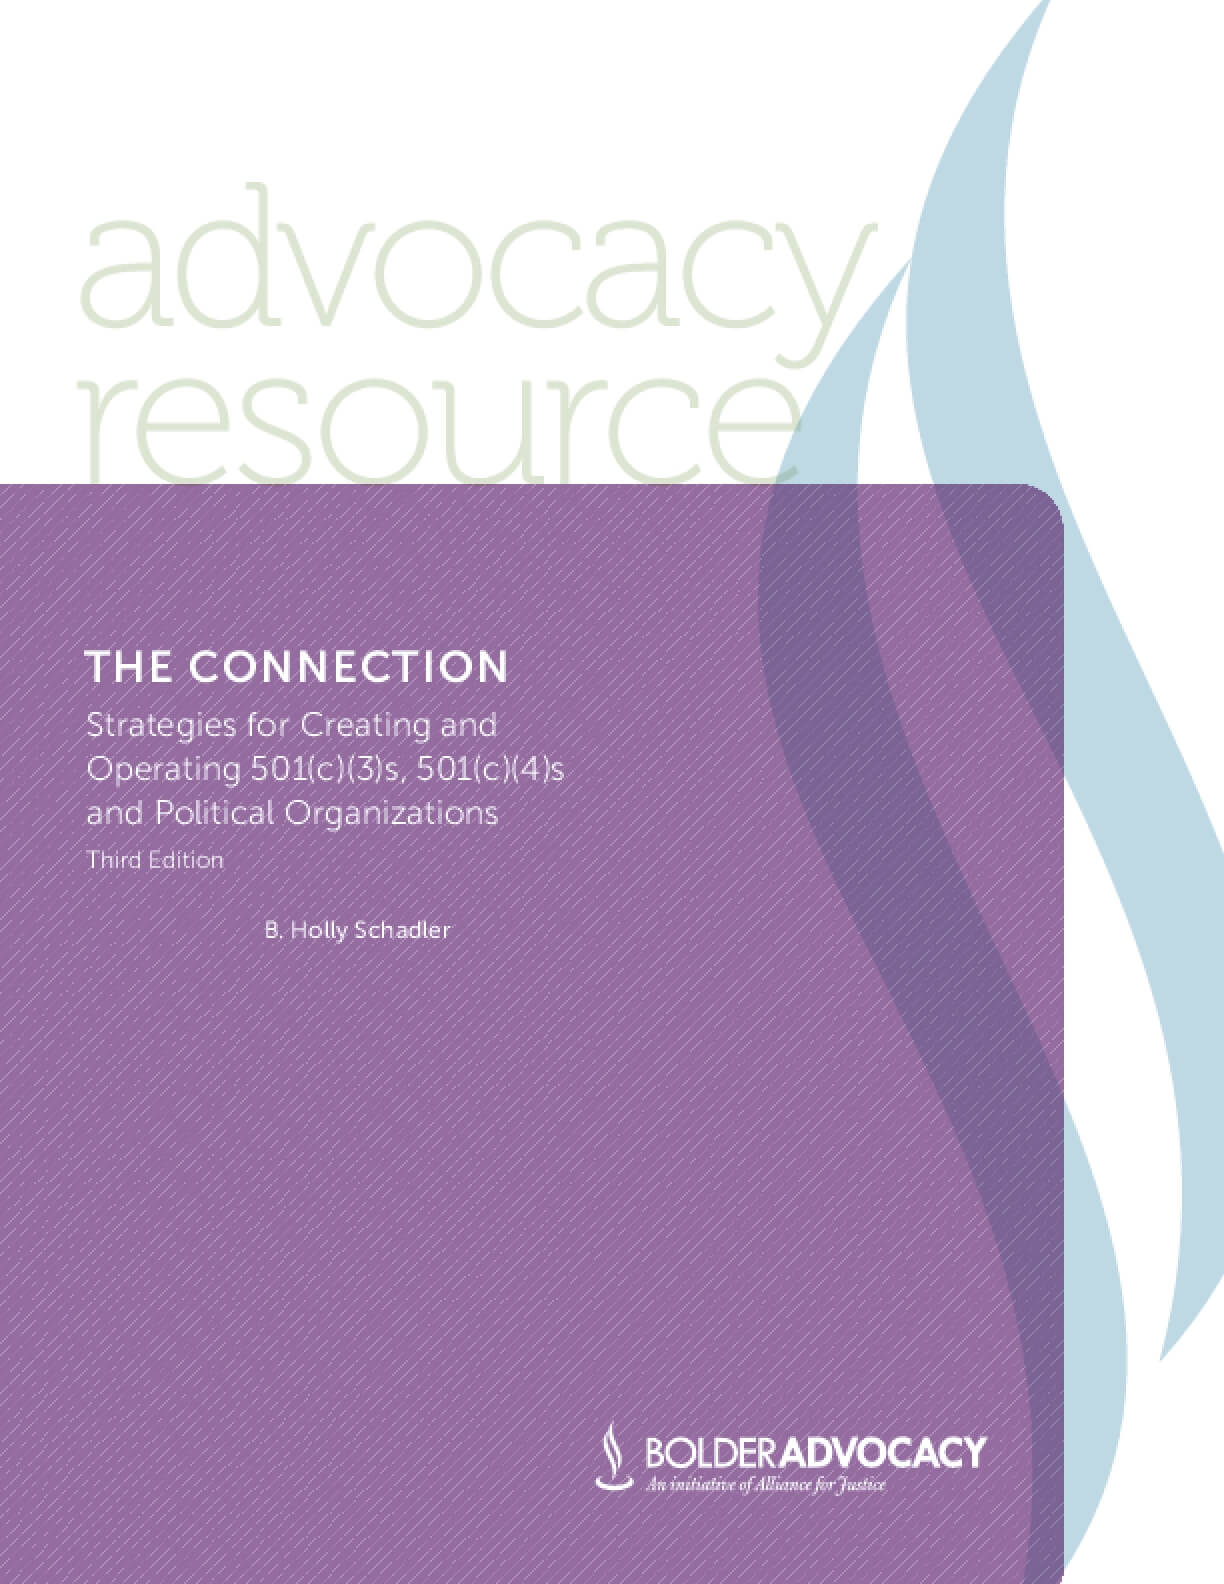 The Connection: Strategies for Creating and Operating 501(c)(3)s, 501(c)(4)s, and Political Organizations